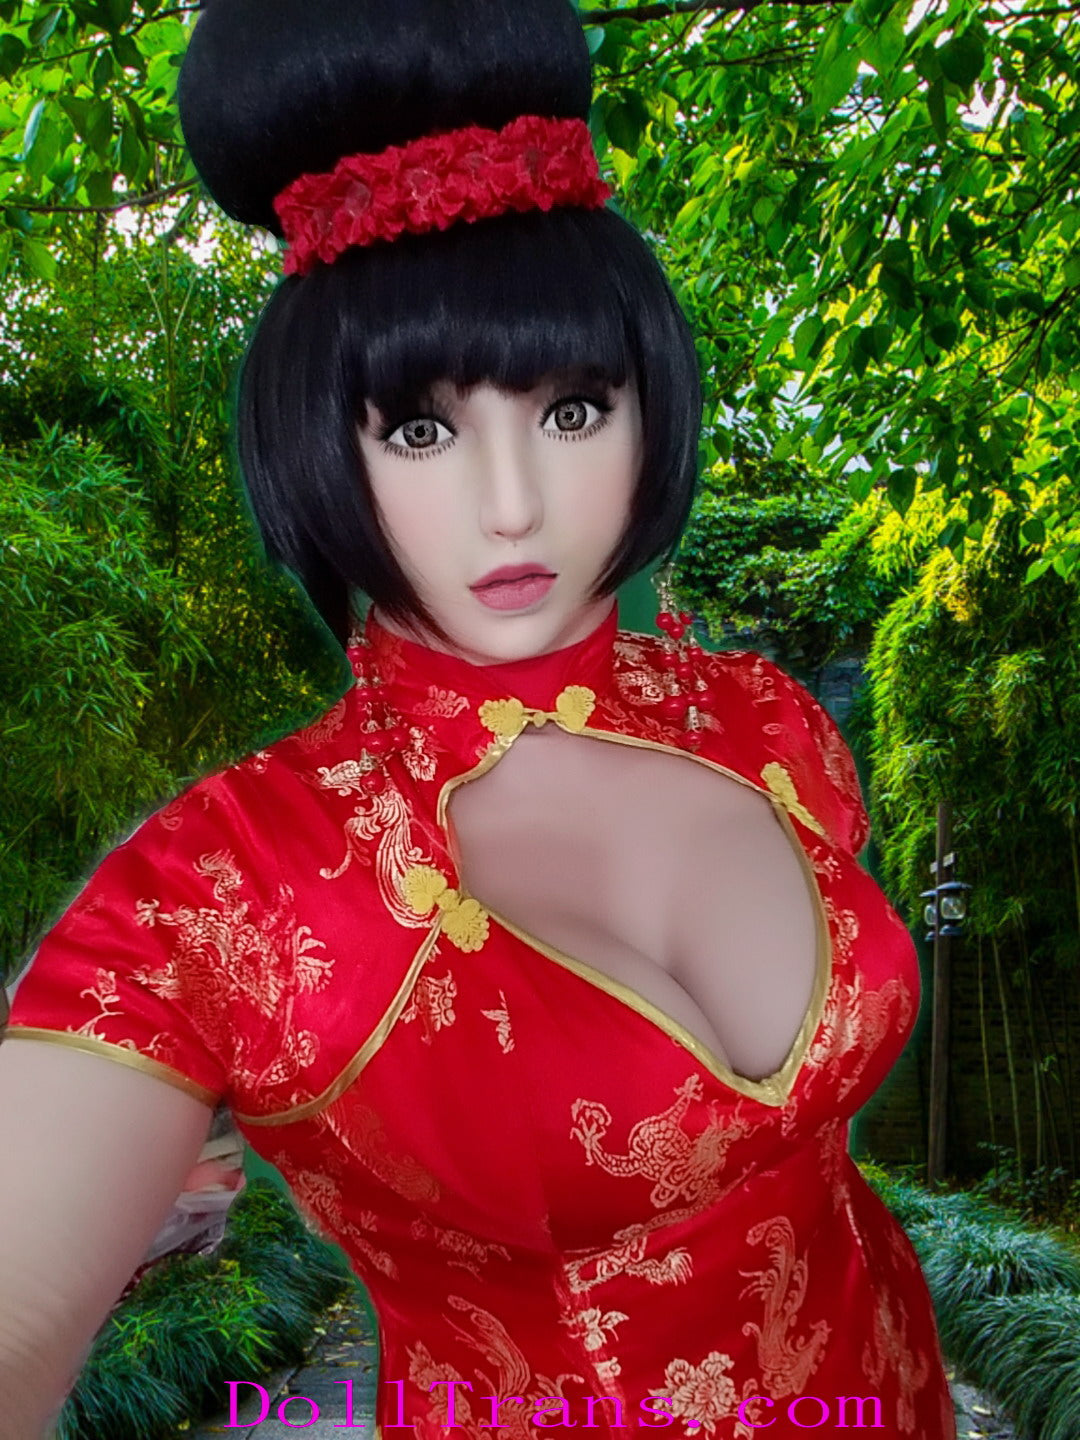 Yukio doll with red china dress and D-cup silicone boobs